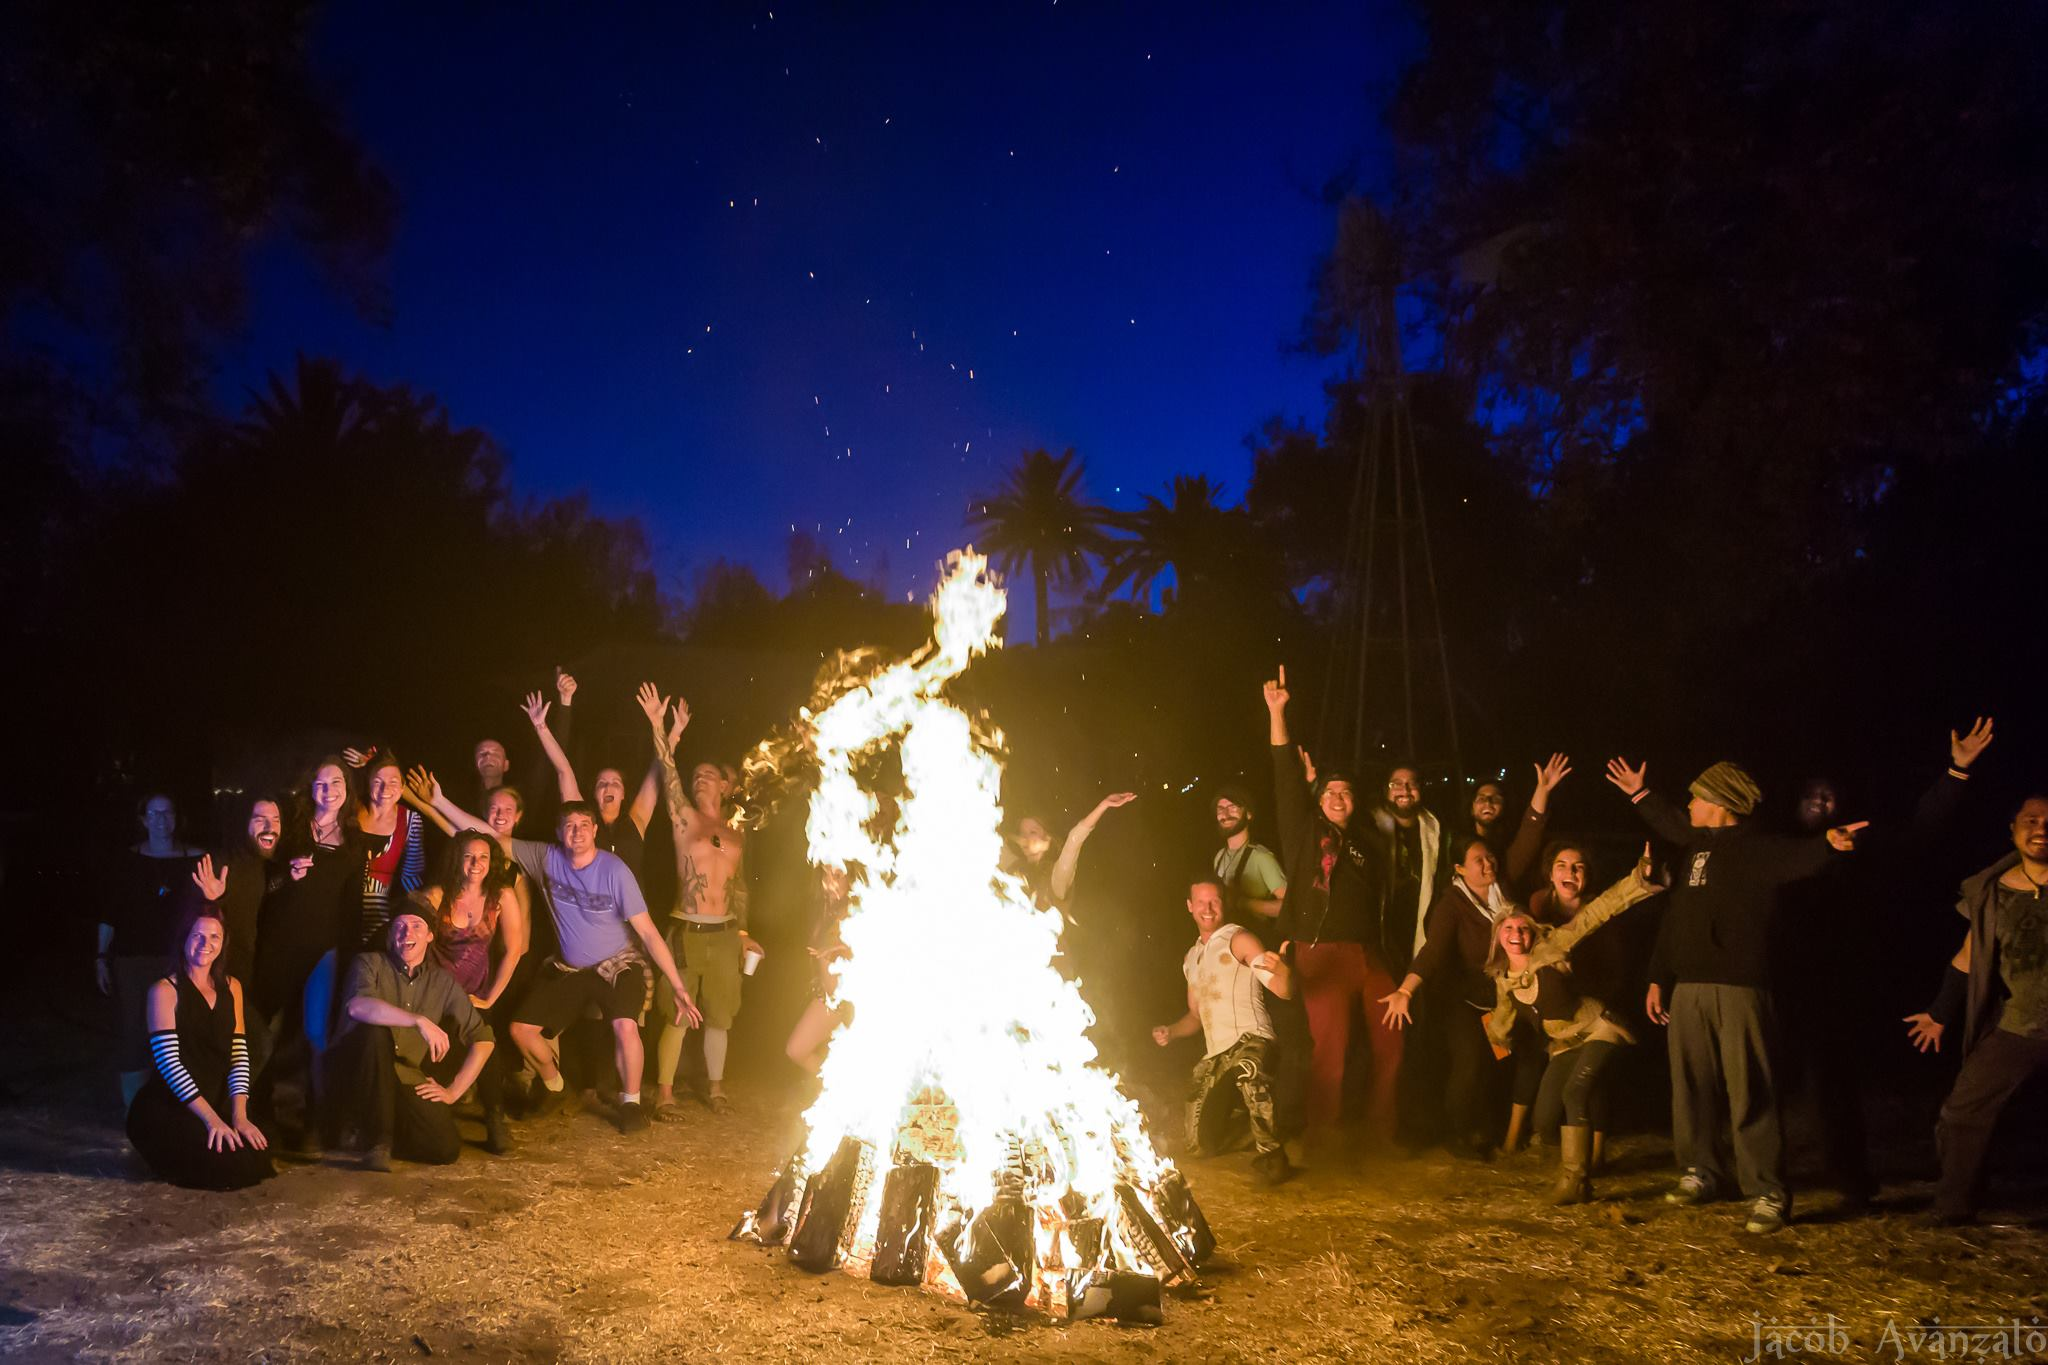 The Firewalking Center Pyrotrainia The Fire Dancer's Empowerment Retreat